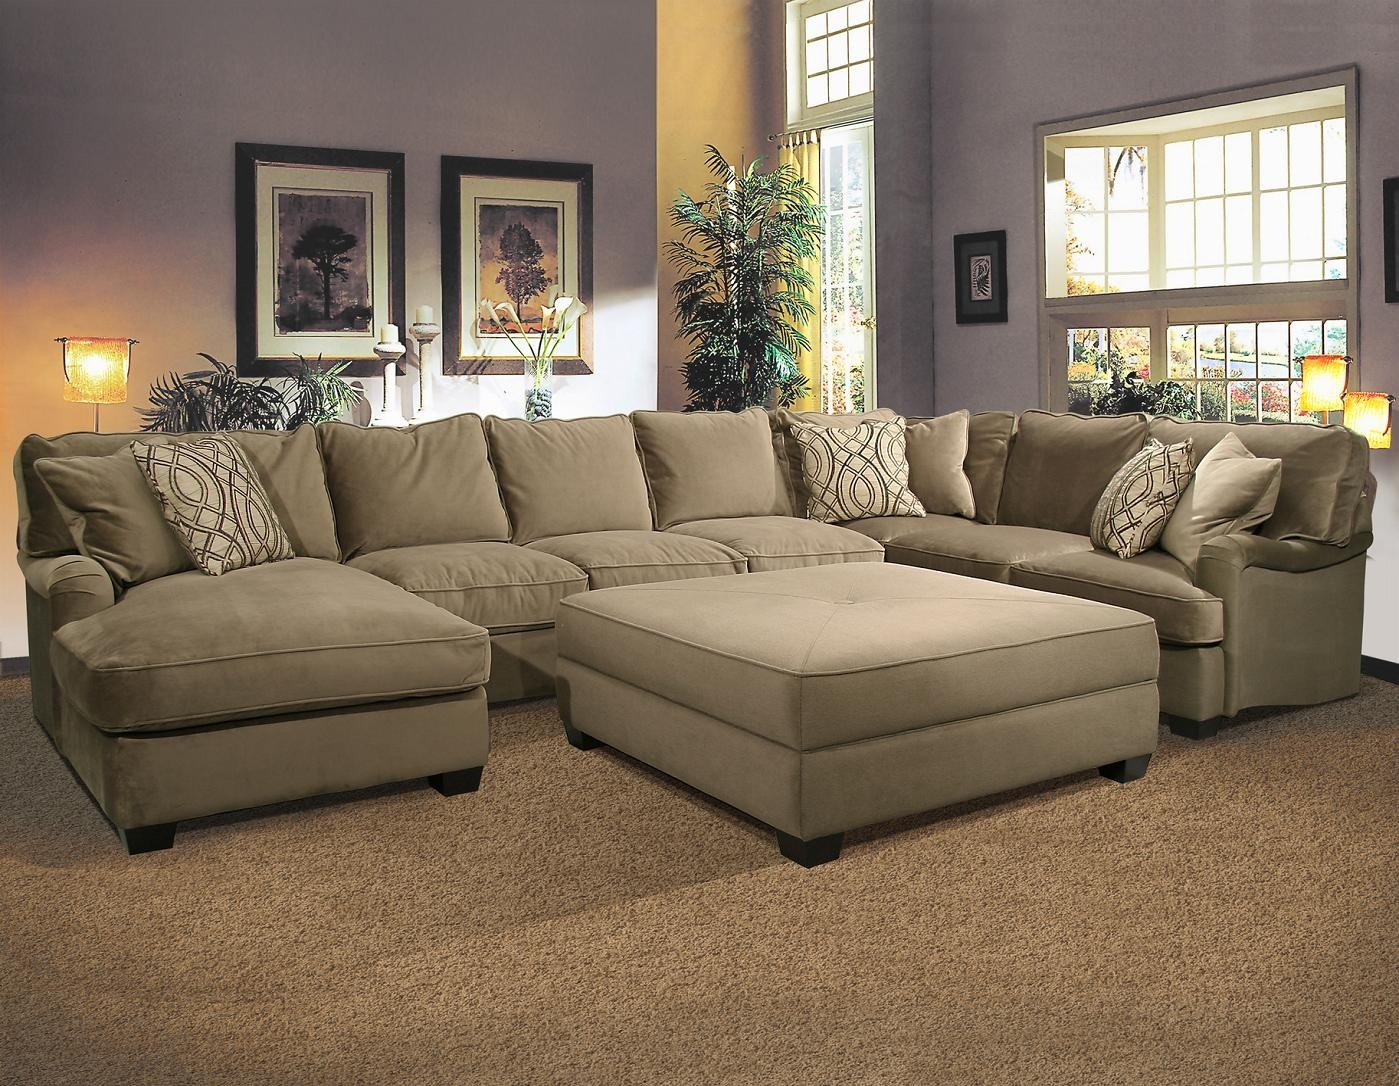 Bostonian Sectional Sofafairmont Seating | Home | Pinterest With Couches With Large Ottoman (View 2 of 10)